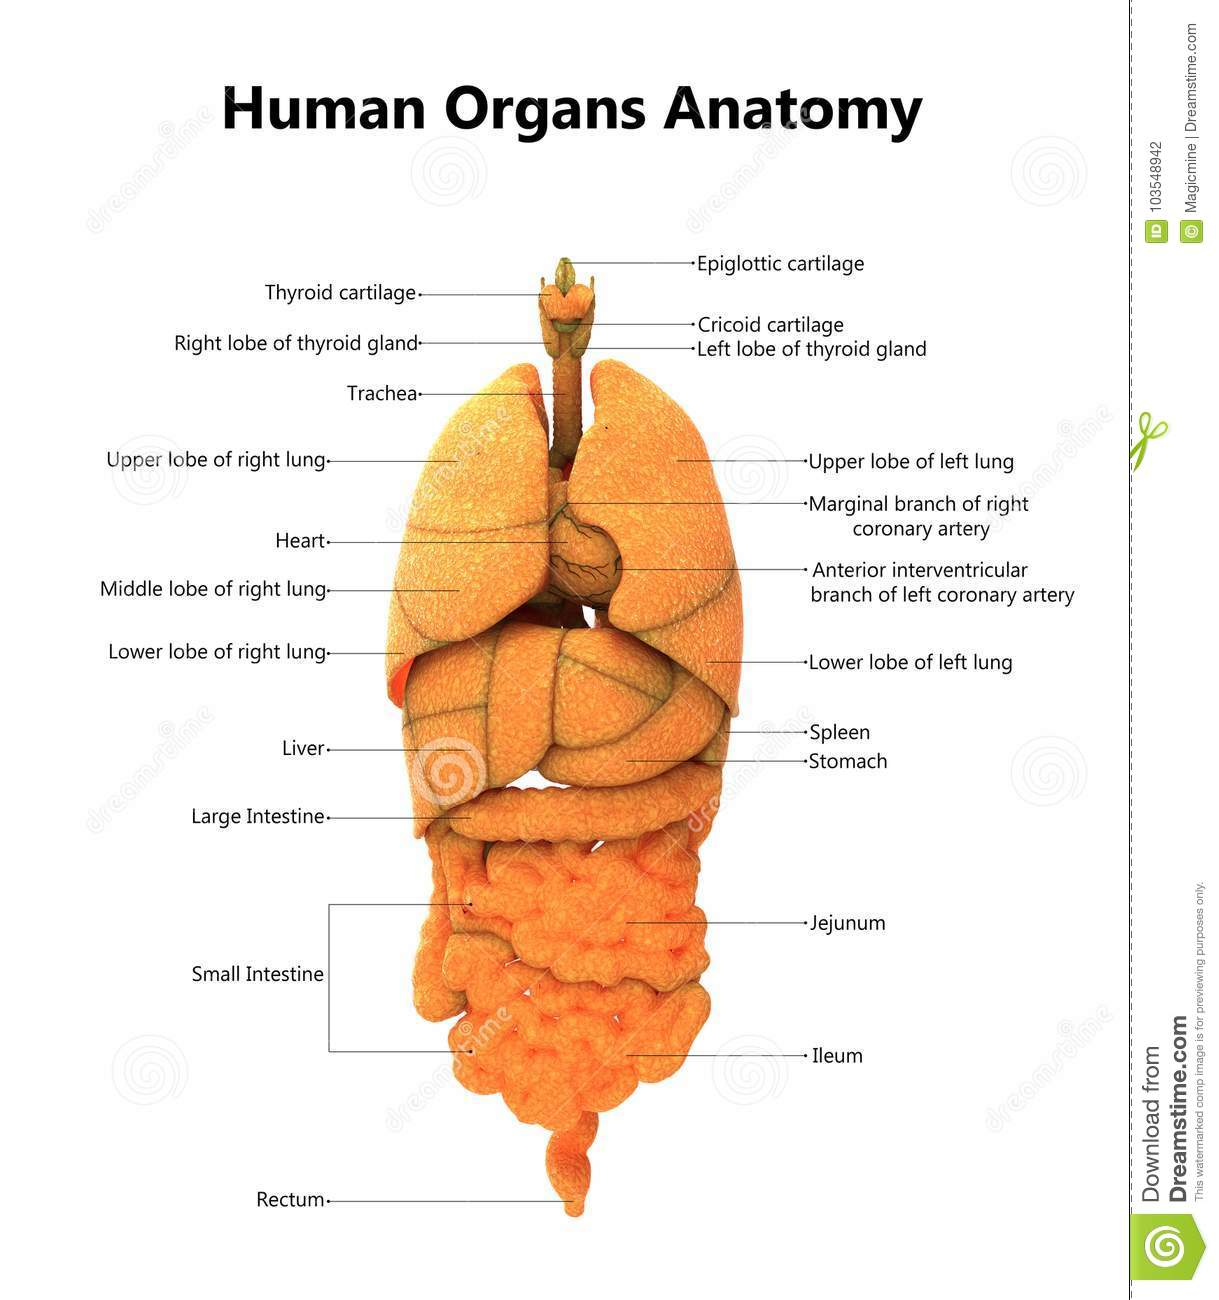 hight resolution of 3d illustration of human body organs anatomy with detailed labels